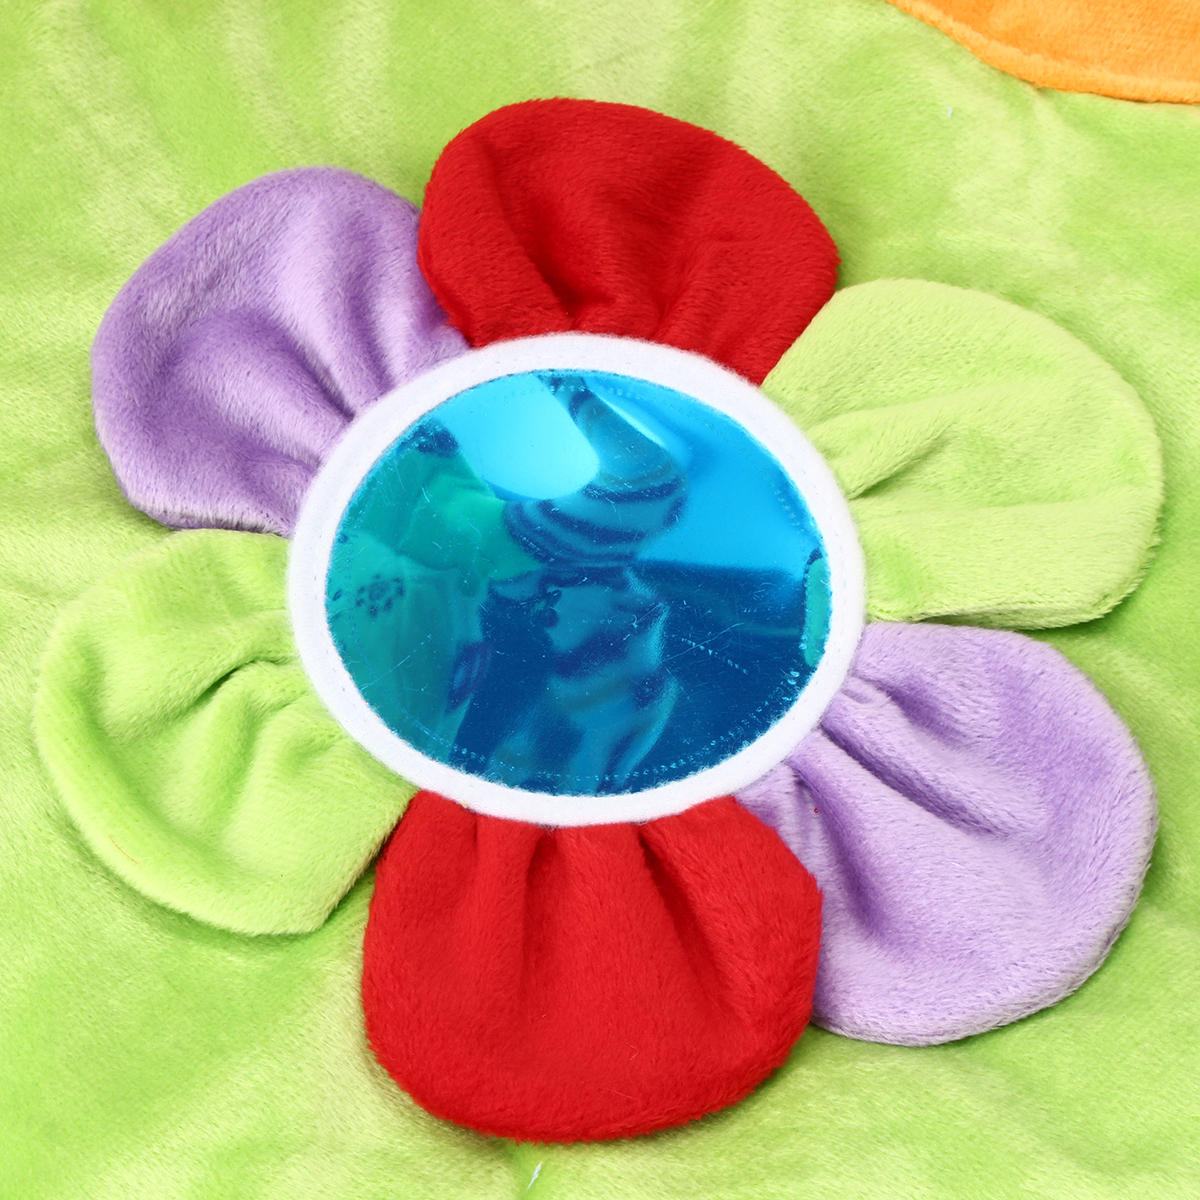 Baby Musical Play Mat Gratis Tummy Time Caterpillar Soft Toy Premium Baby Play Mat - 8